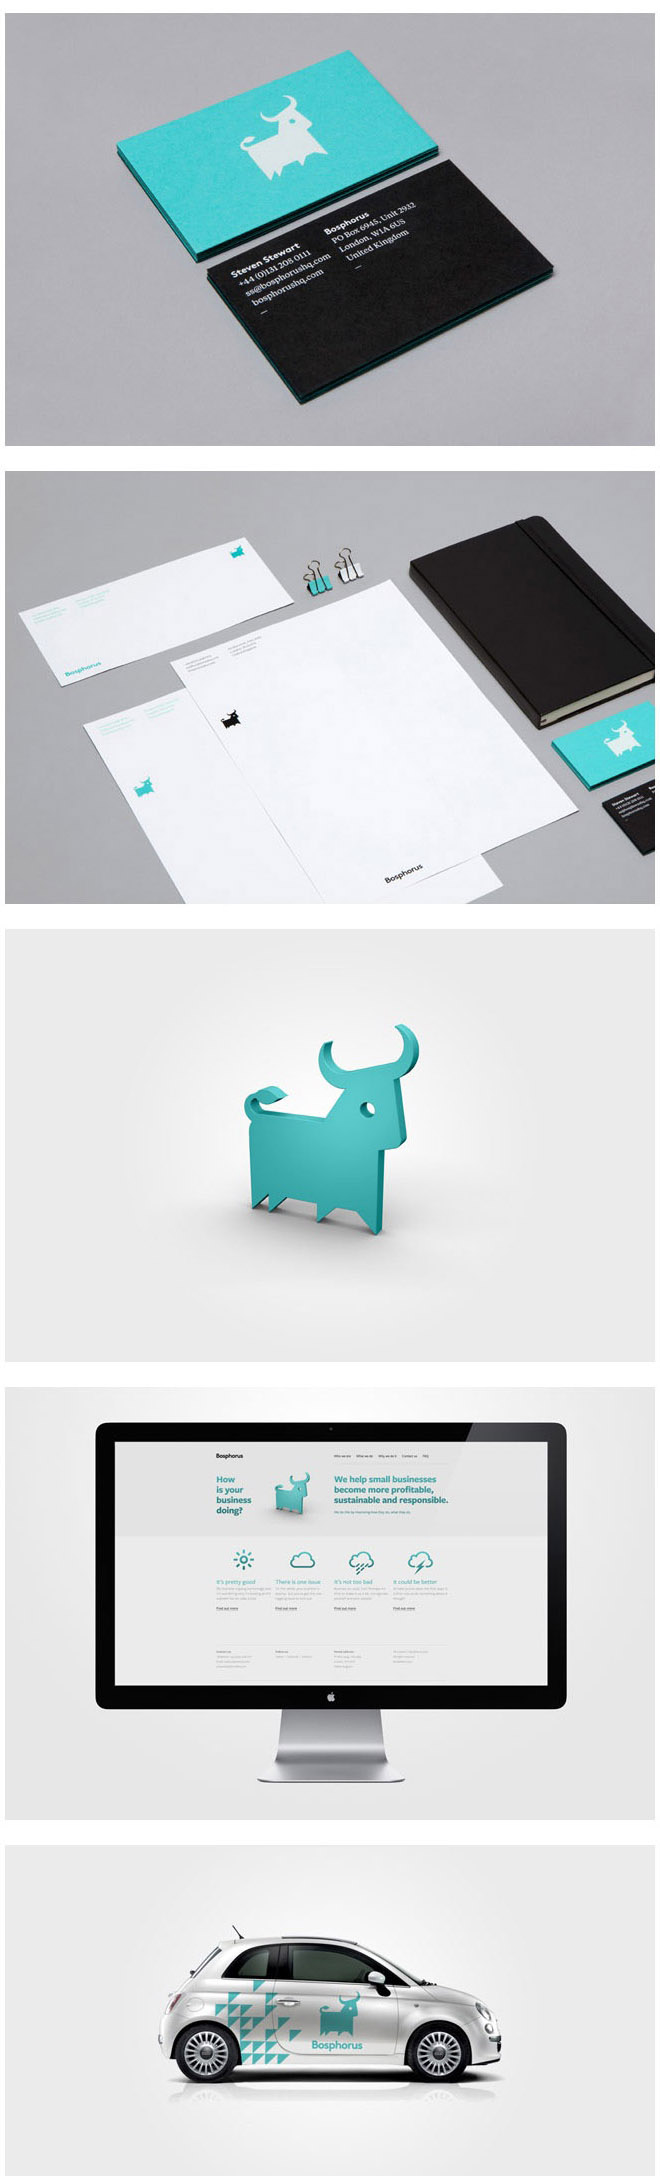 7-bosphorus-best-branding-design